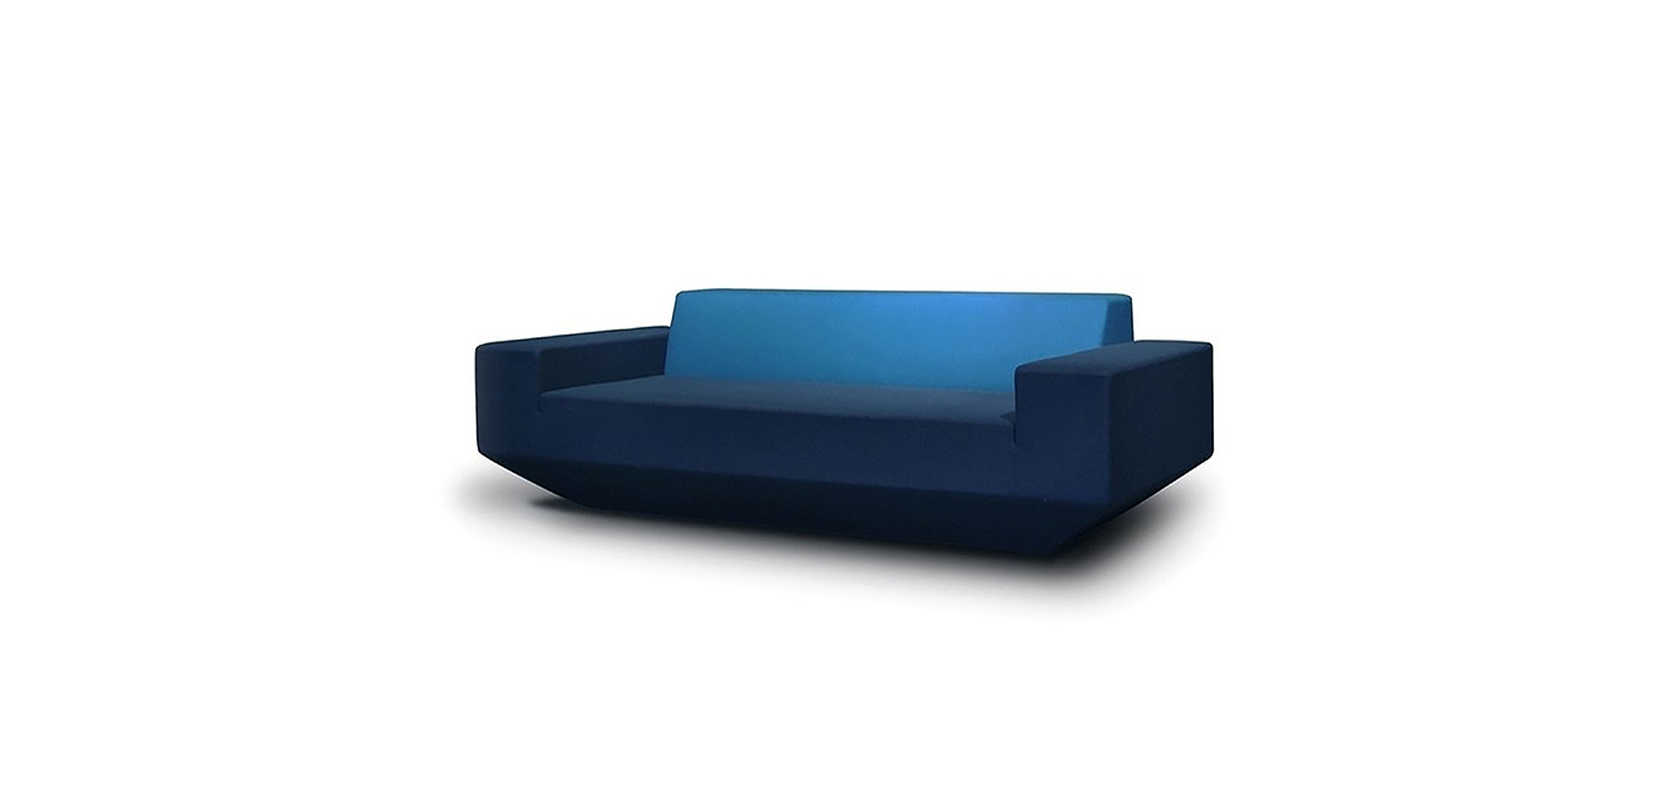 NOV SOFA BRAND:  MXM.  WEB:   www.mxm-designs.com  Nov Sofa is made of wool fabric, upgrade comfort experience. The color scheme of Nov Sofa provides a special visual contrast, which shows a strong vision and neutral style.